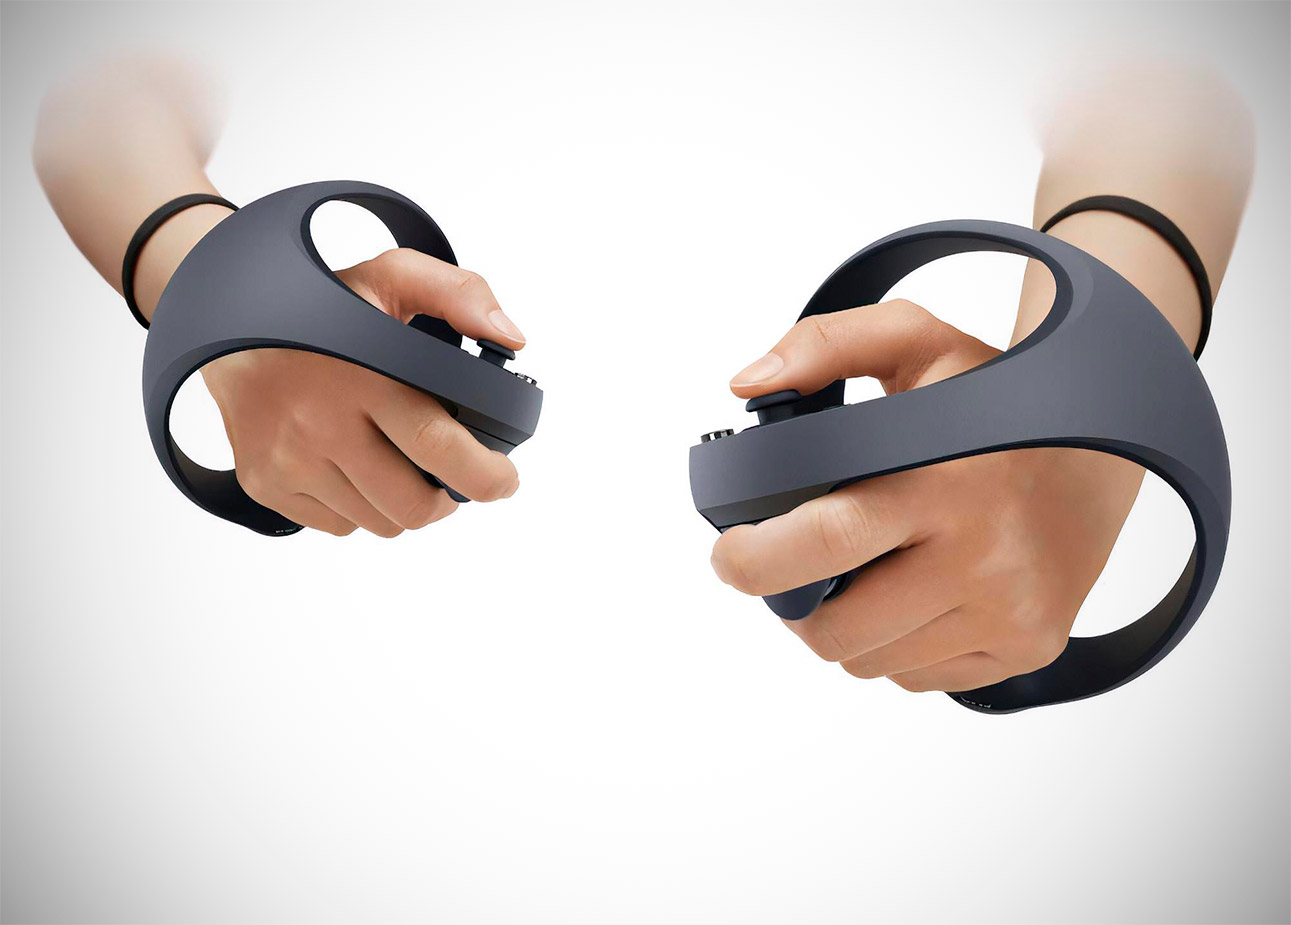 Next-Gen PS5 VR Controllers